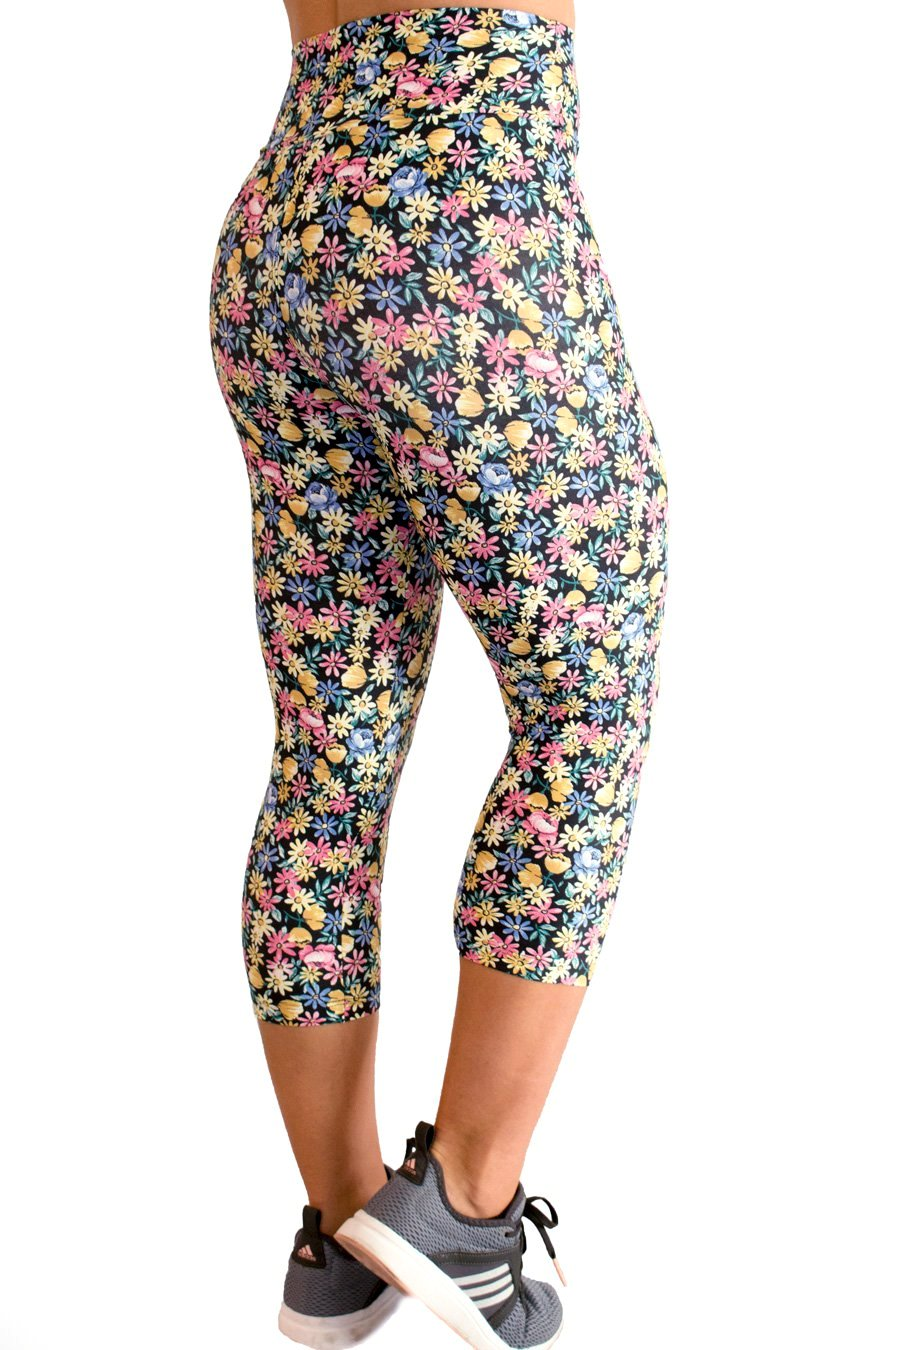 Flores de Alegria Light CO2 Capris - women yoga clothes beBrazil